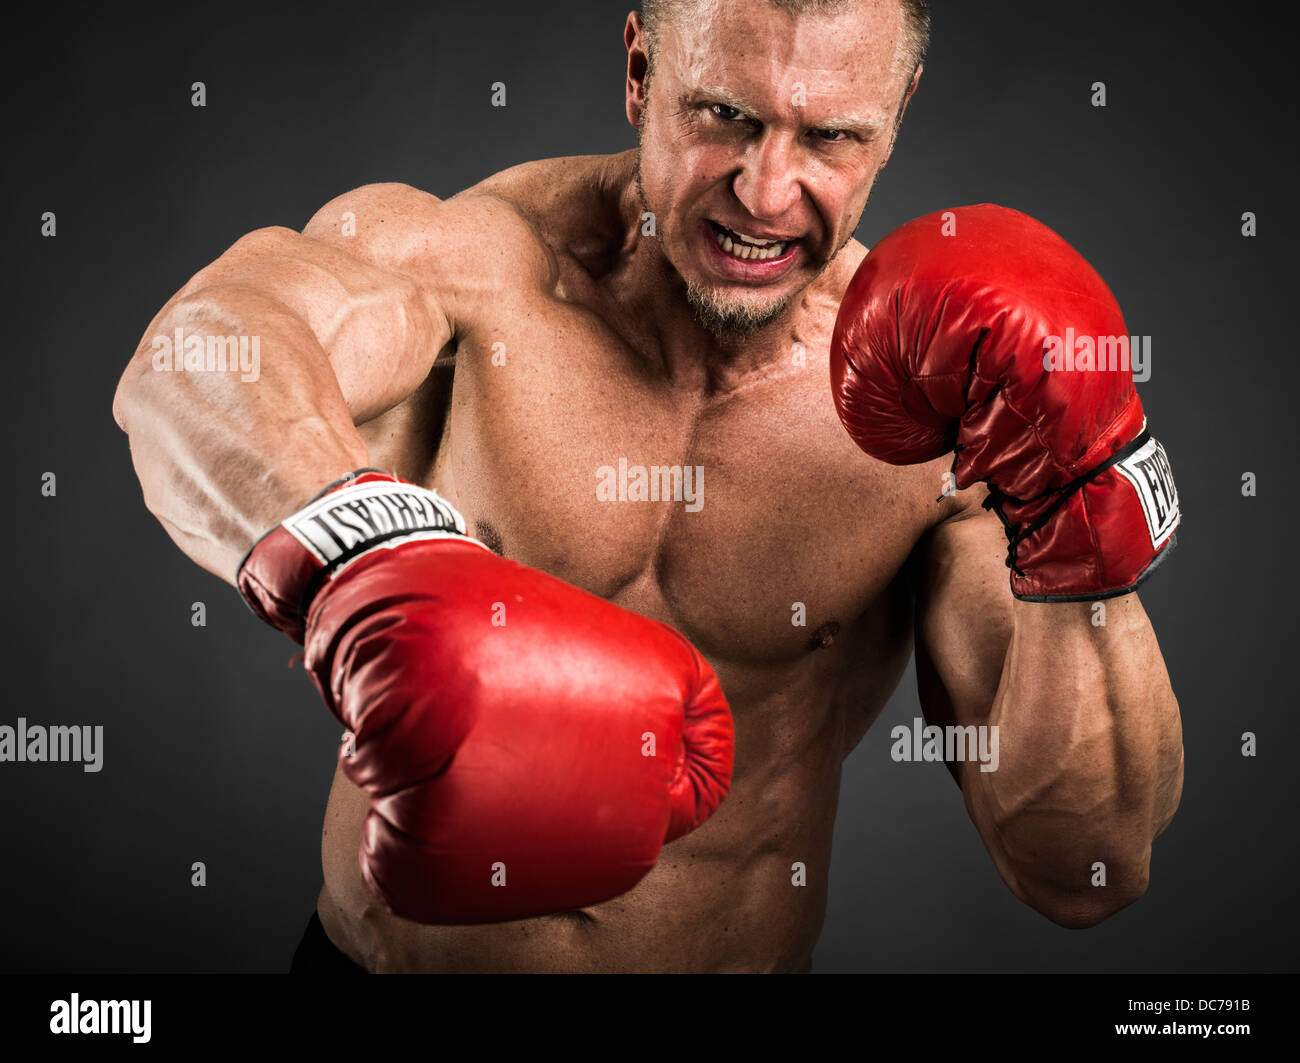 Heavyweight Boxer with red gloves punching - Stock Image